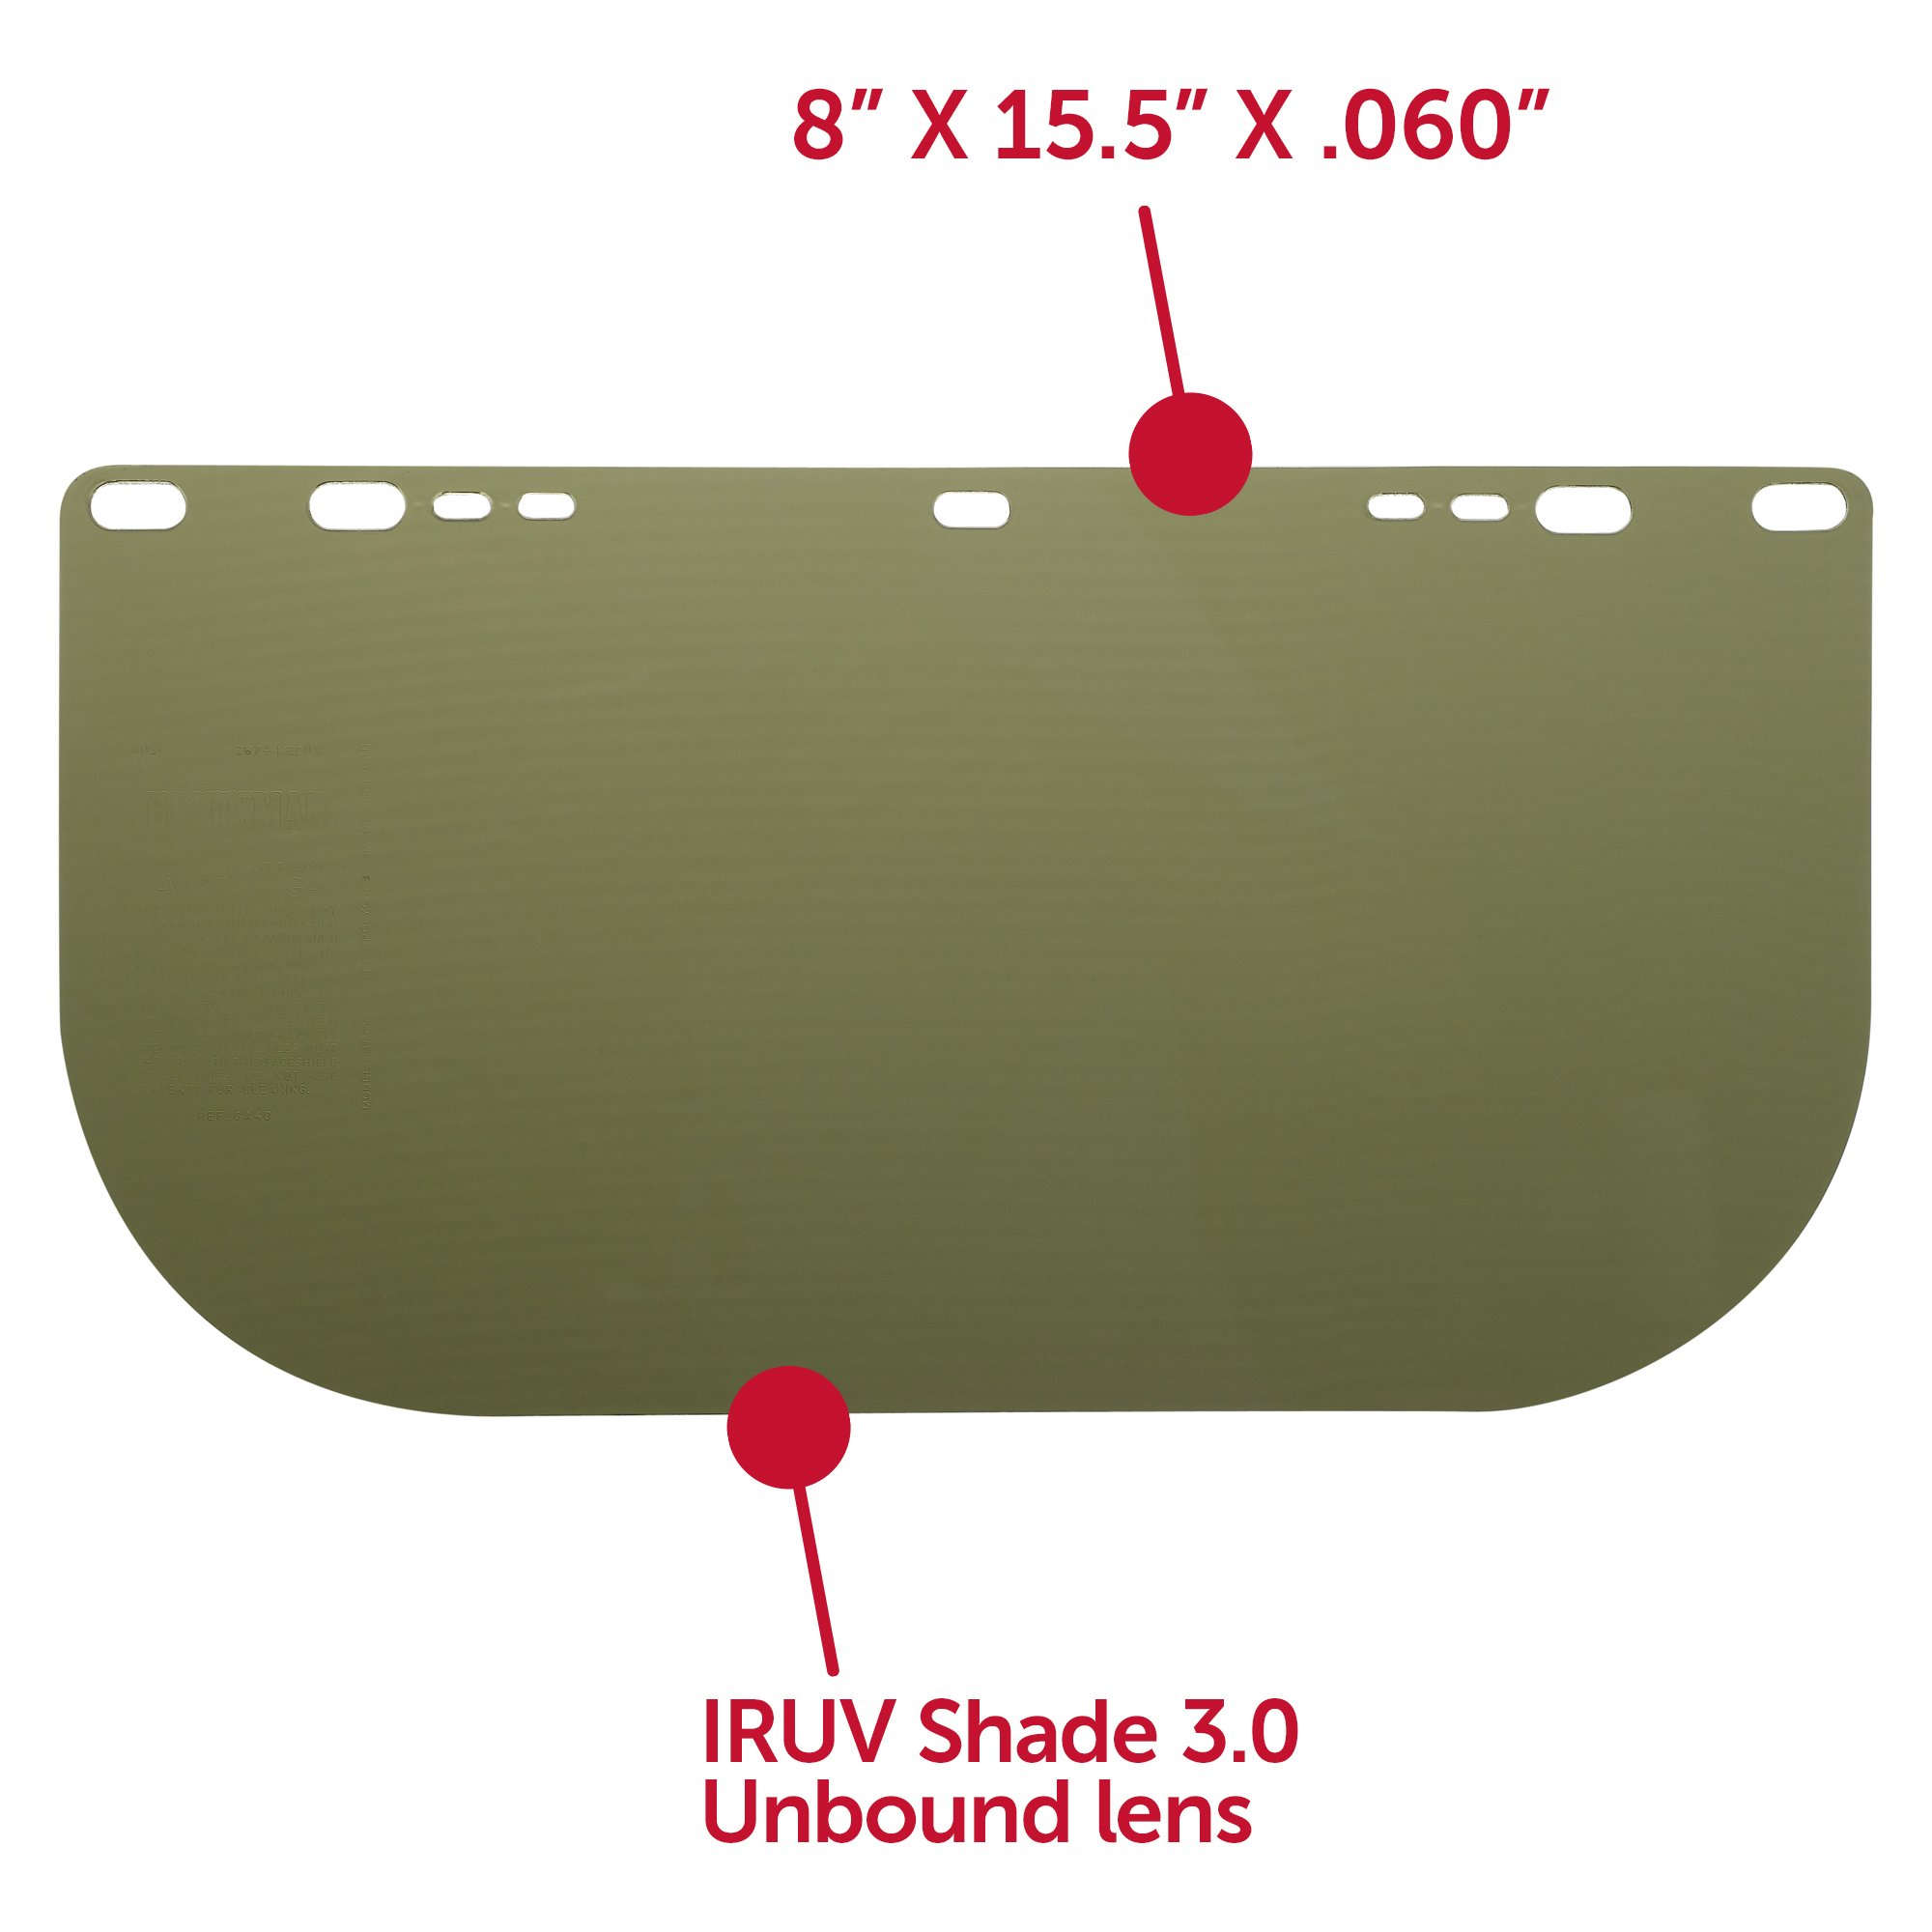 "Jackson Safety F50 Specialty High Impact Face Shield (26262), Polycarbonate, 8"" x 15.5"" x 0.06"", IRUV 3.0, Face Protection, Unbound, 12 Shields / Case by Jackson Safety (Image #3)"